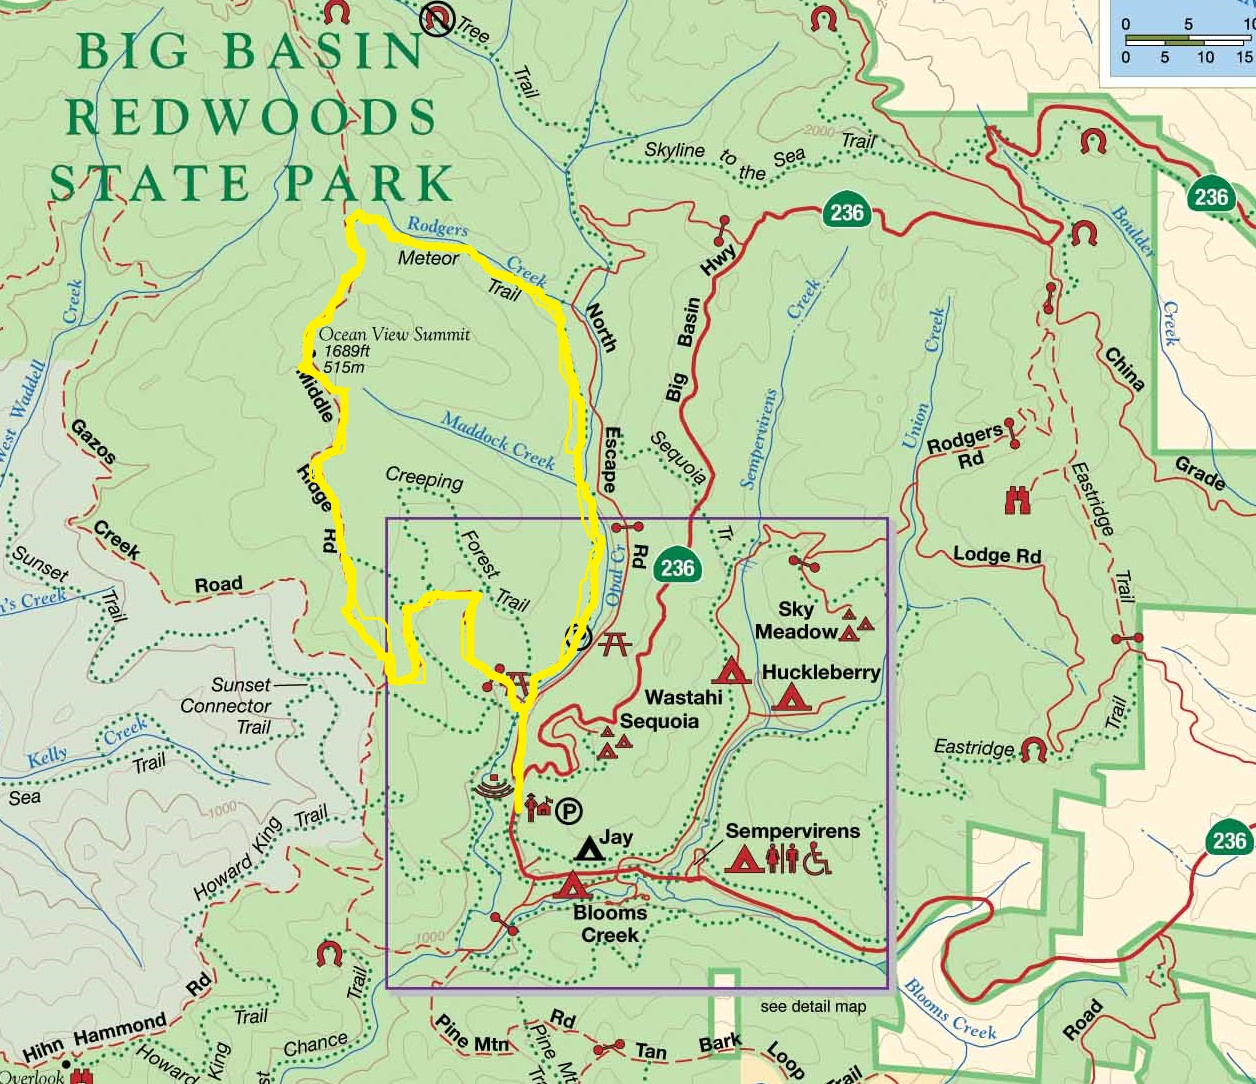 Lord of Three Realms: Big Basin Redwoods State Park